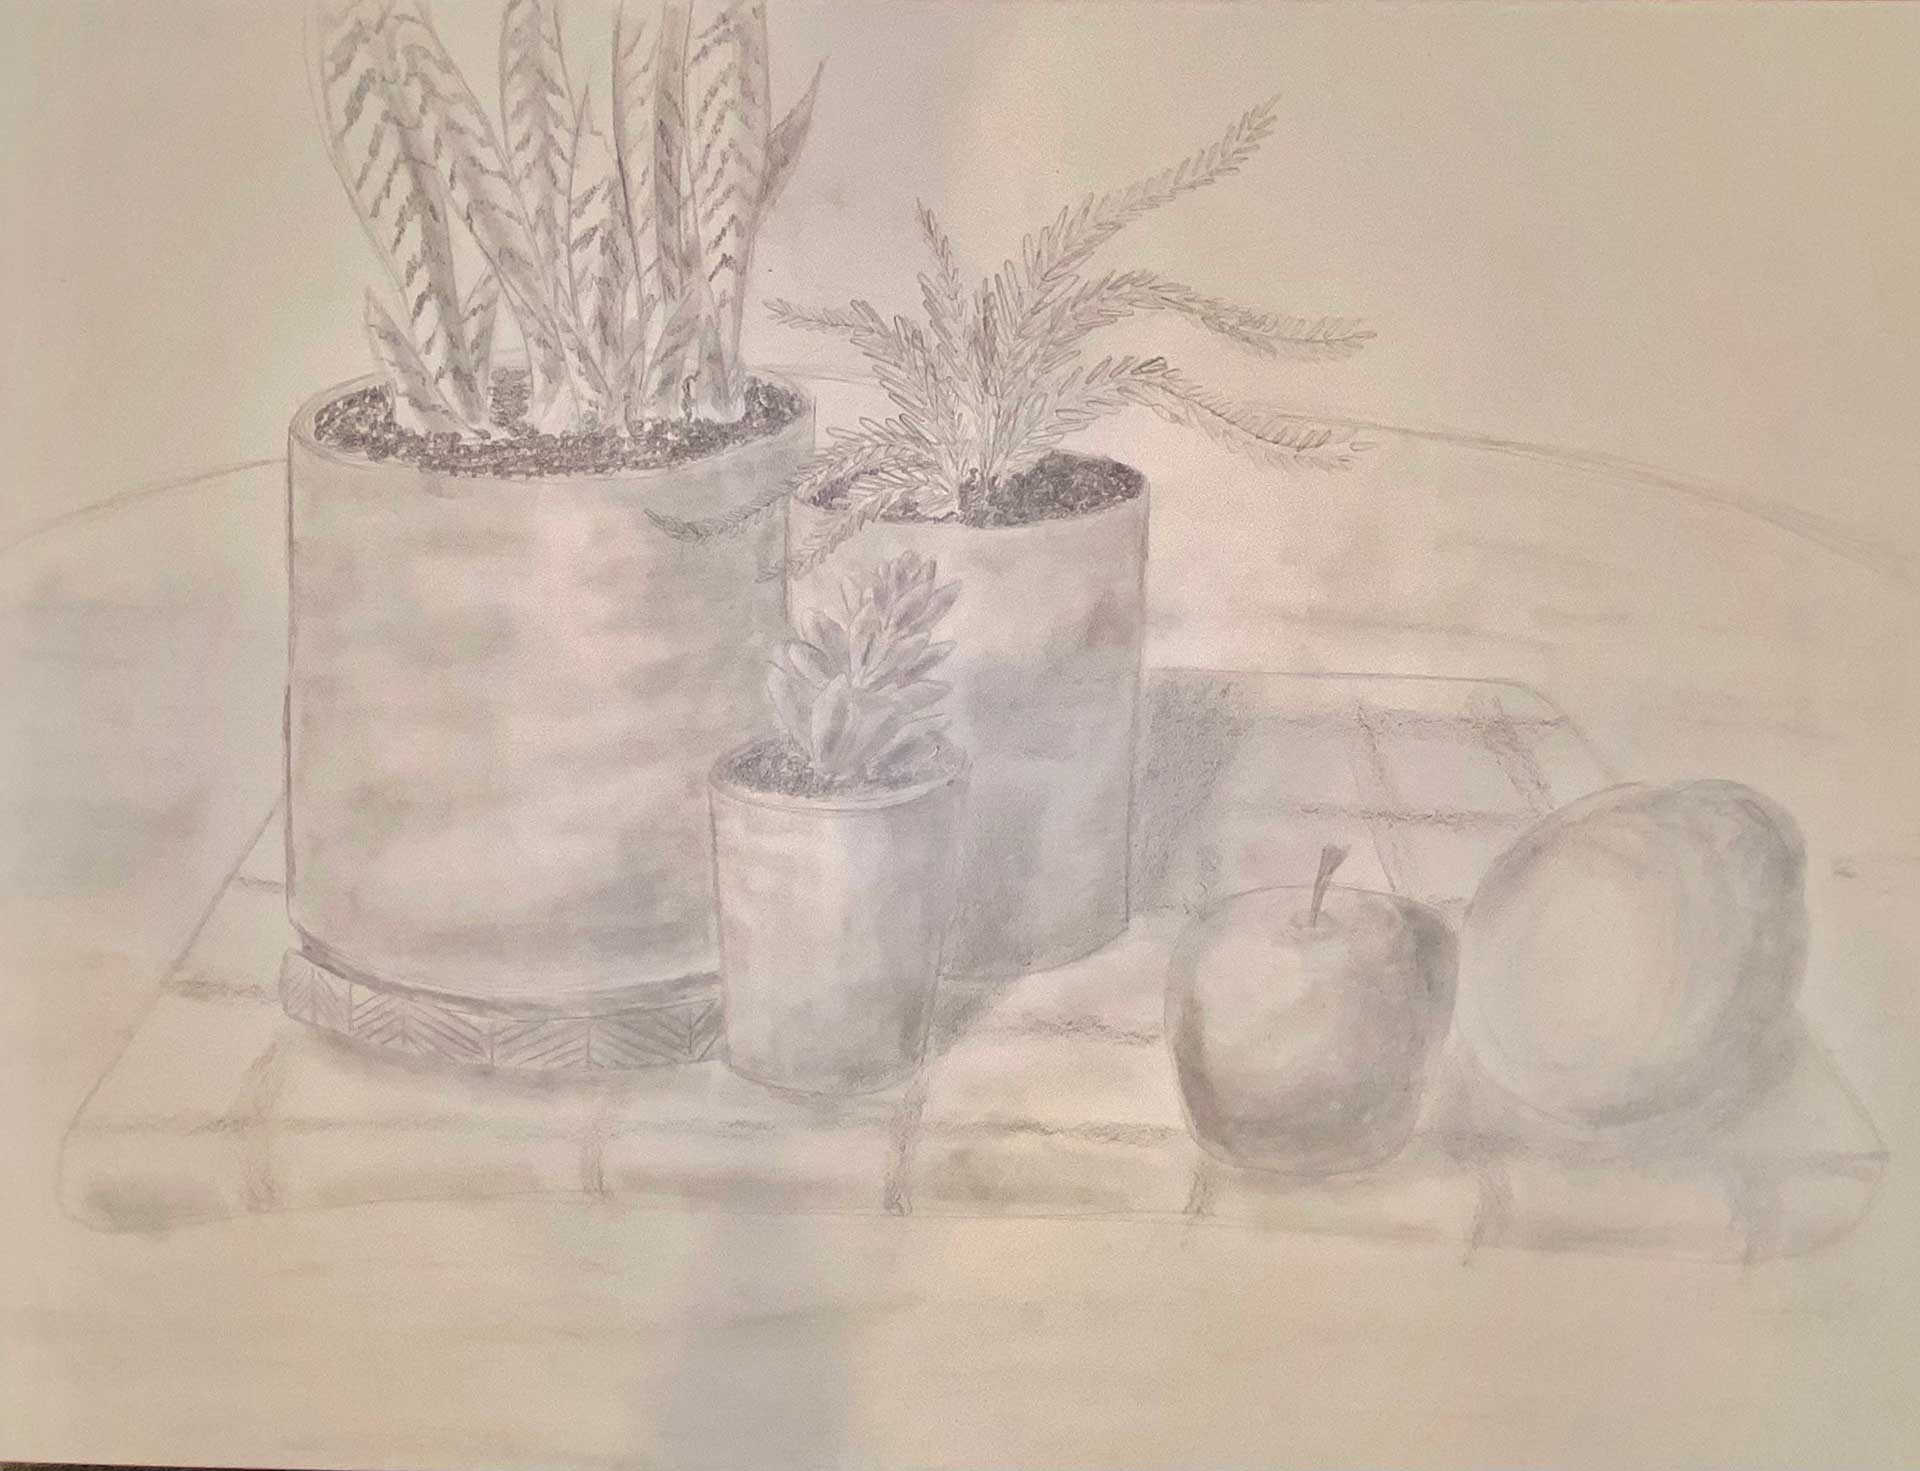 A graphite sketch composing of several potted plants, an apple, and an orange all situated on a plaid fabric.